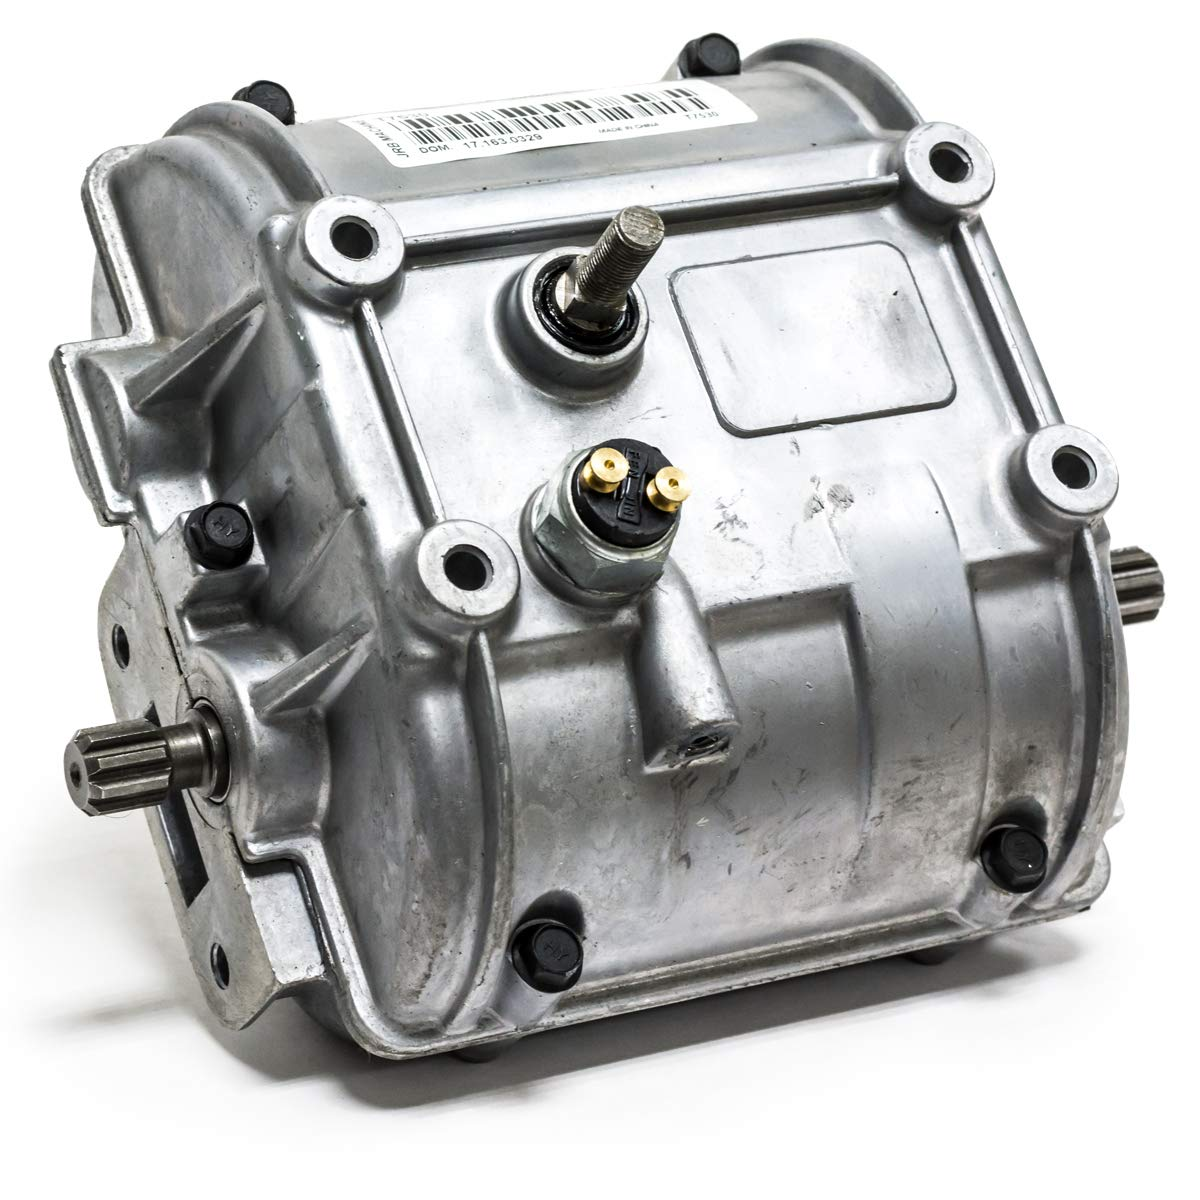 Toro Exmark Mower replacement Transmission Peerless Style 700-070A 700-078 700-079